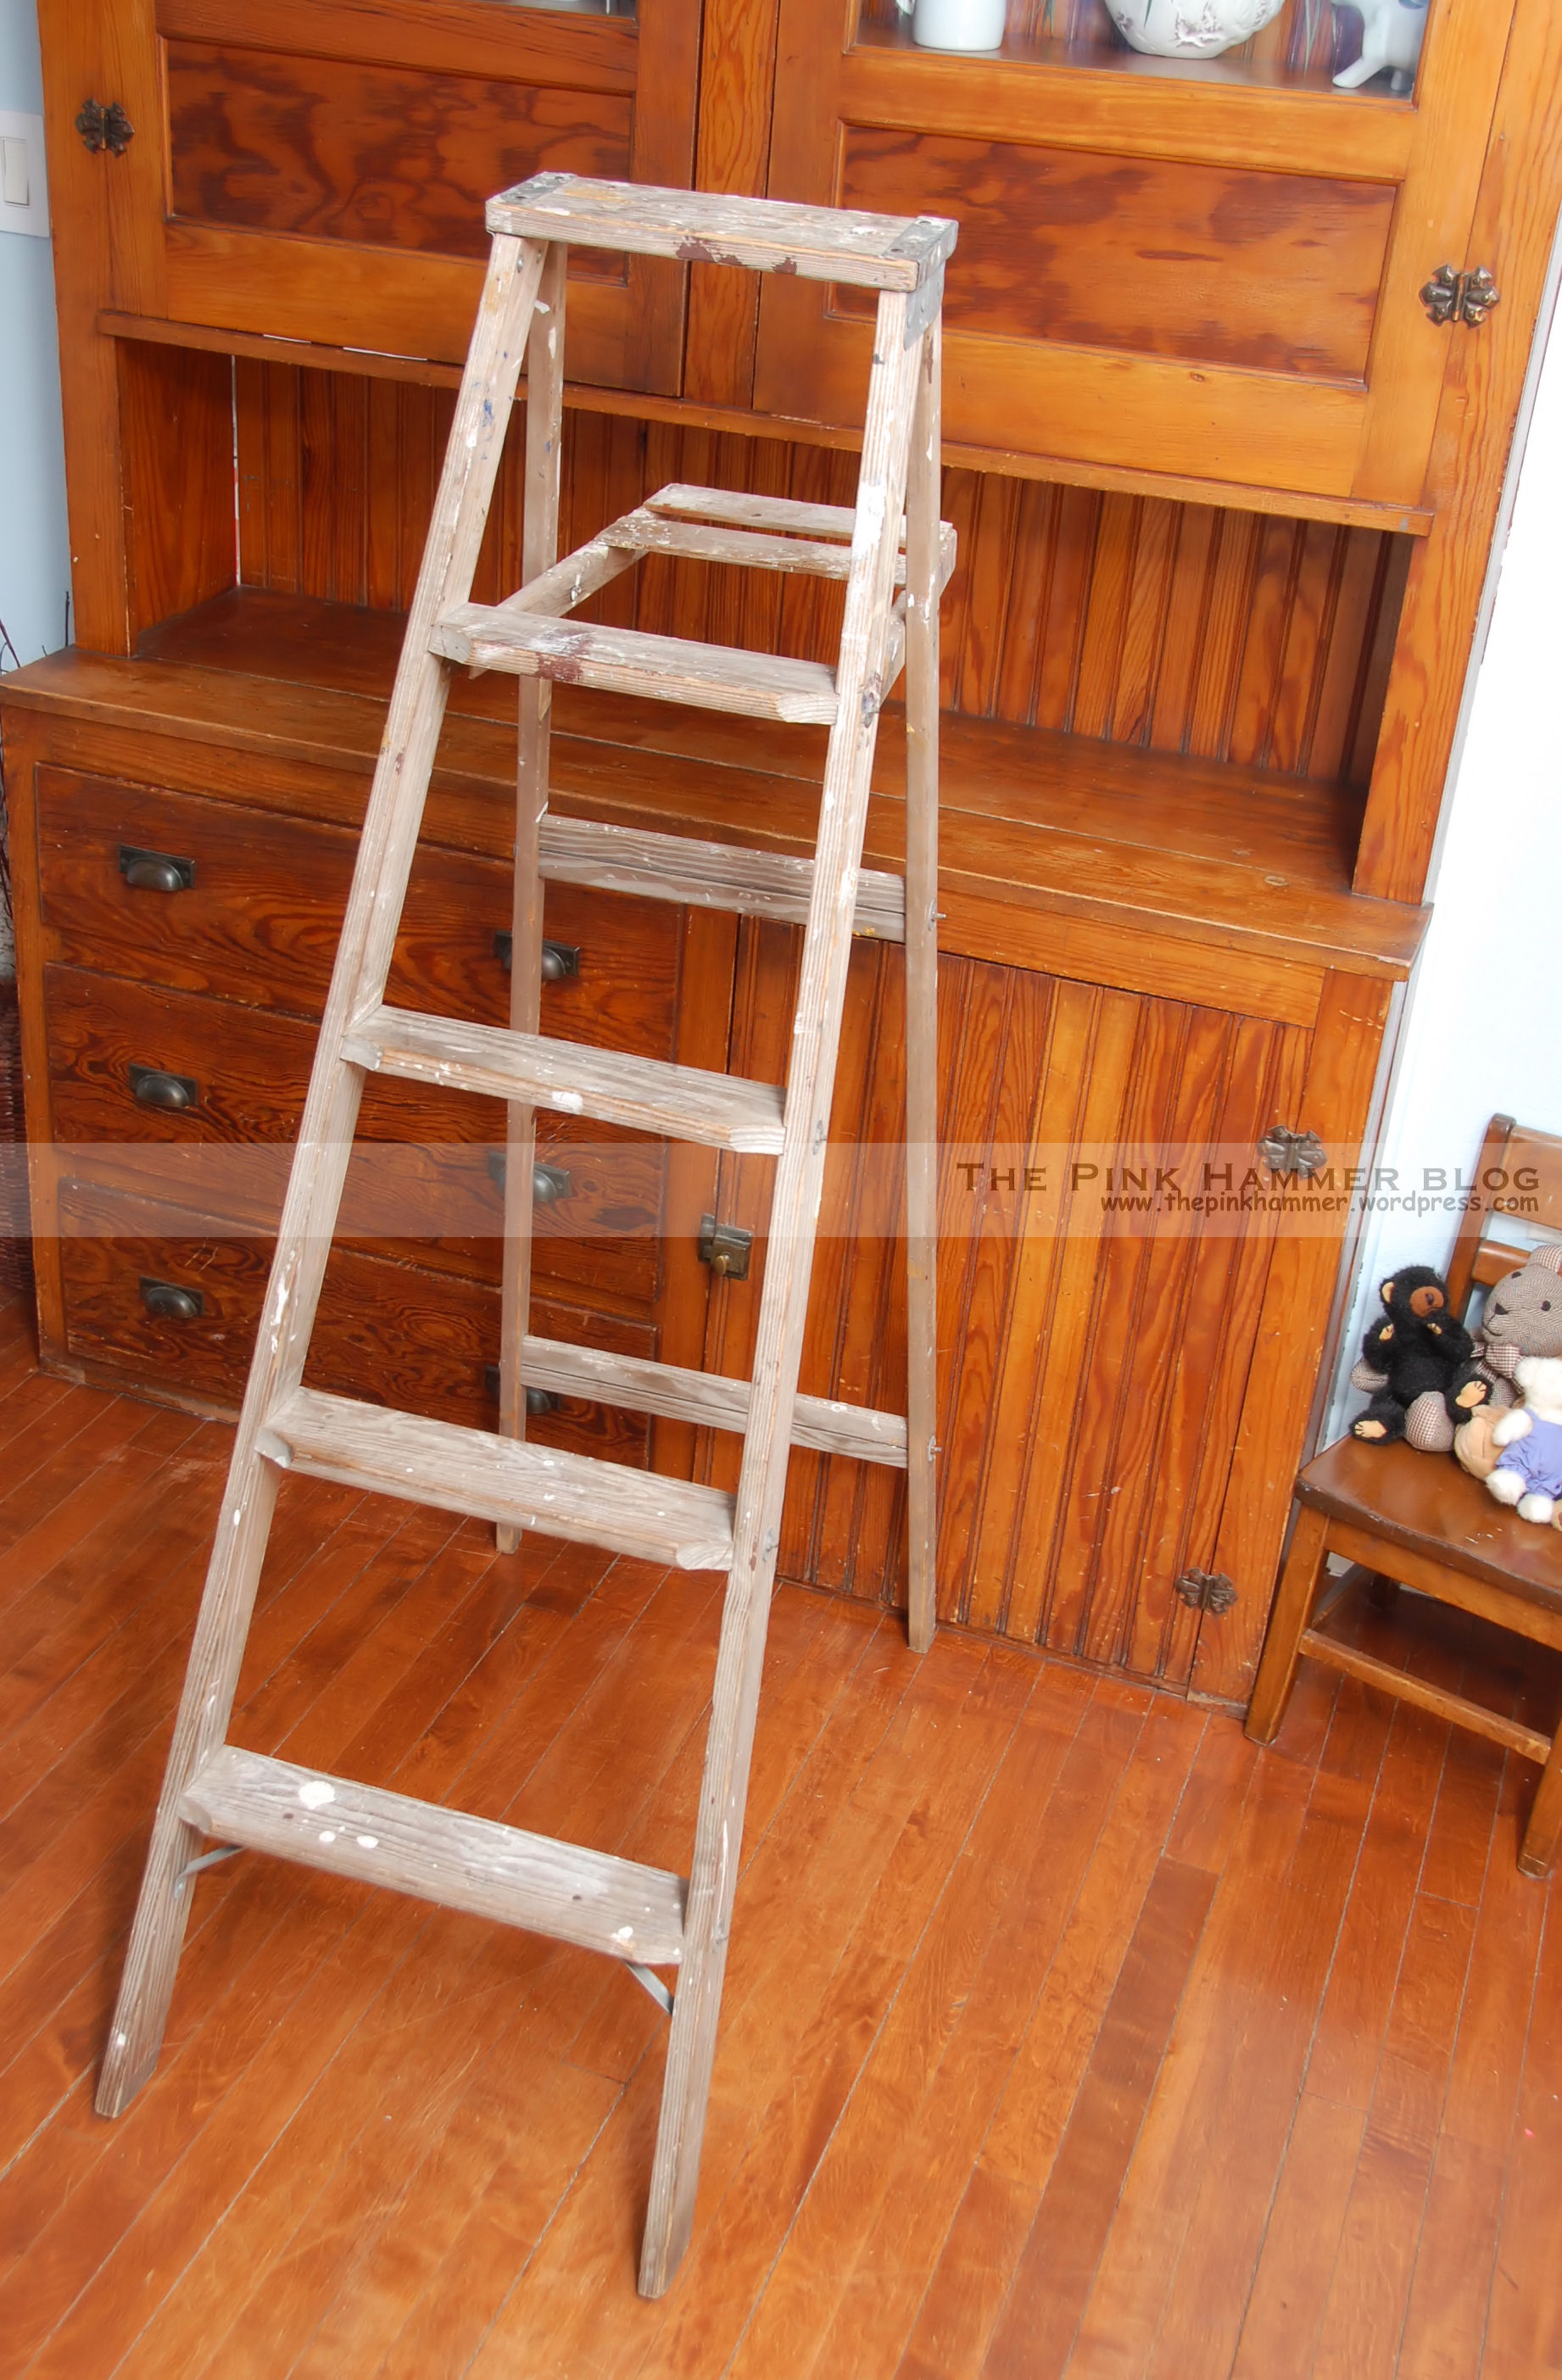 Upcycle old wood ladder into bookshelf diy rustic home for Old wooden ladder projects